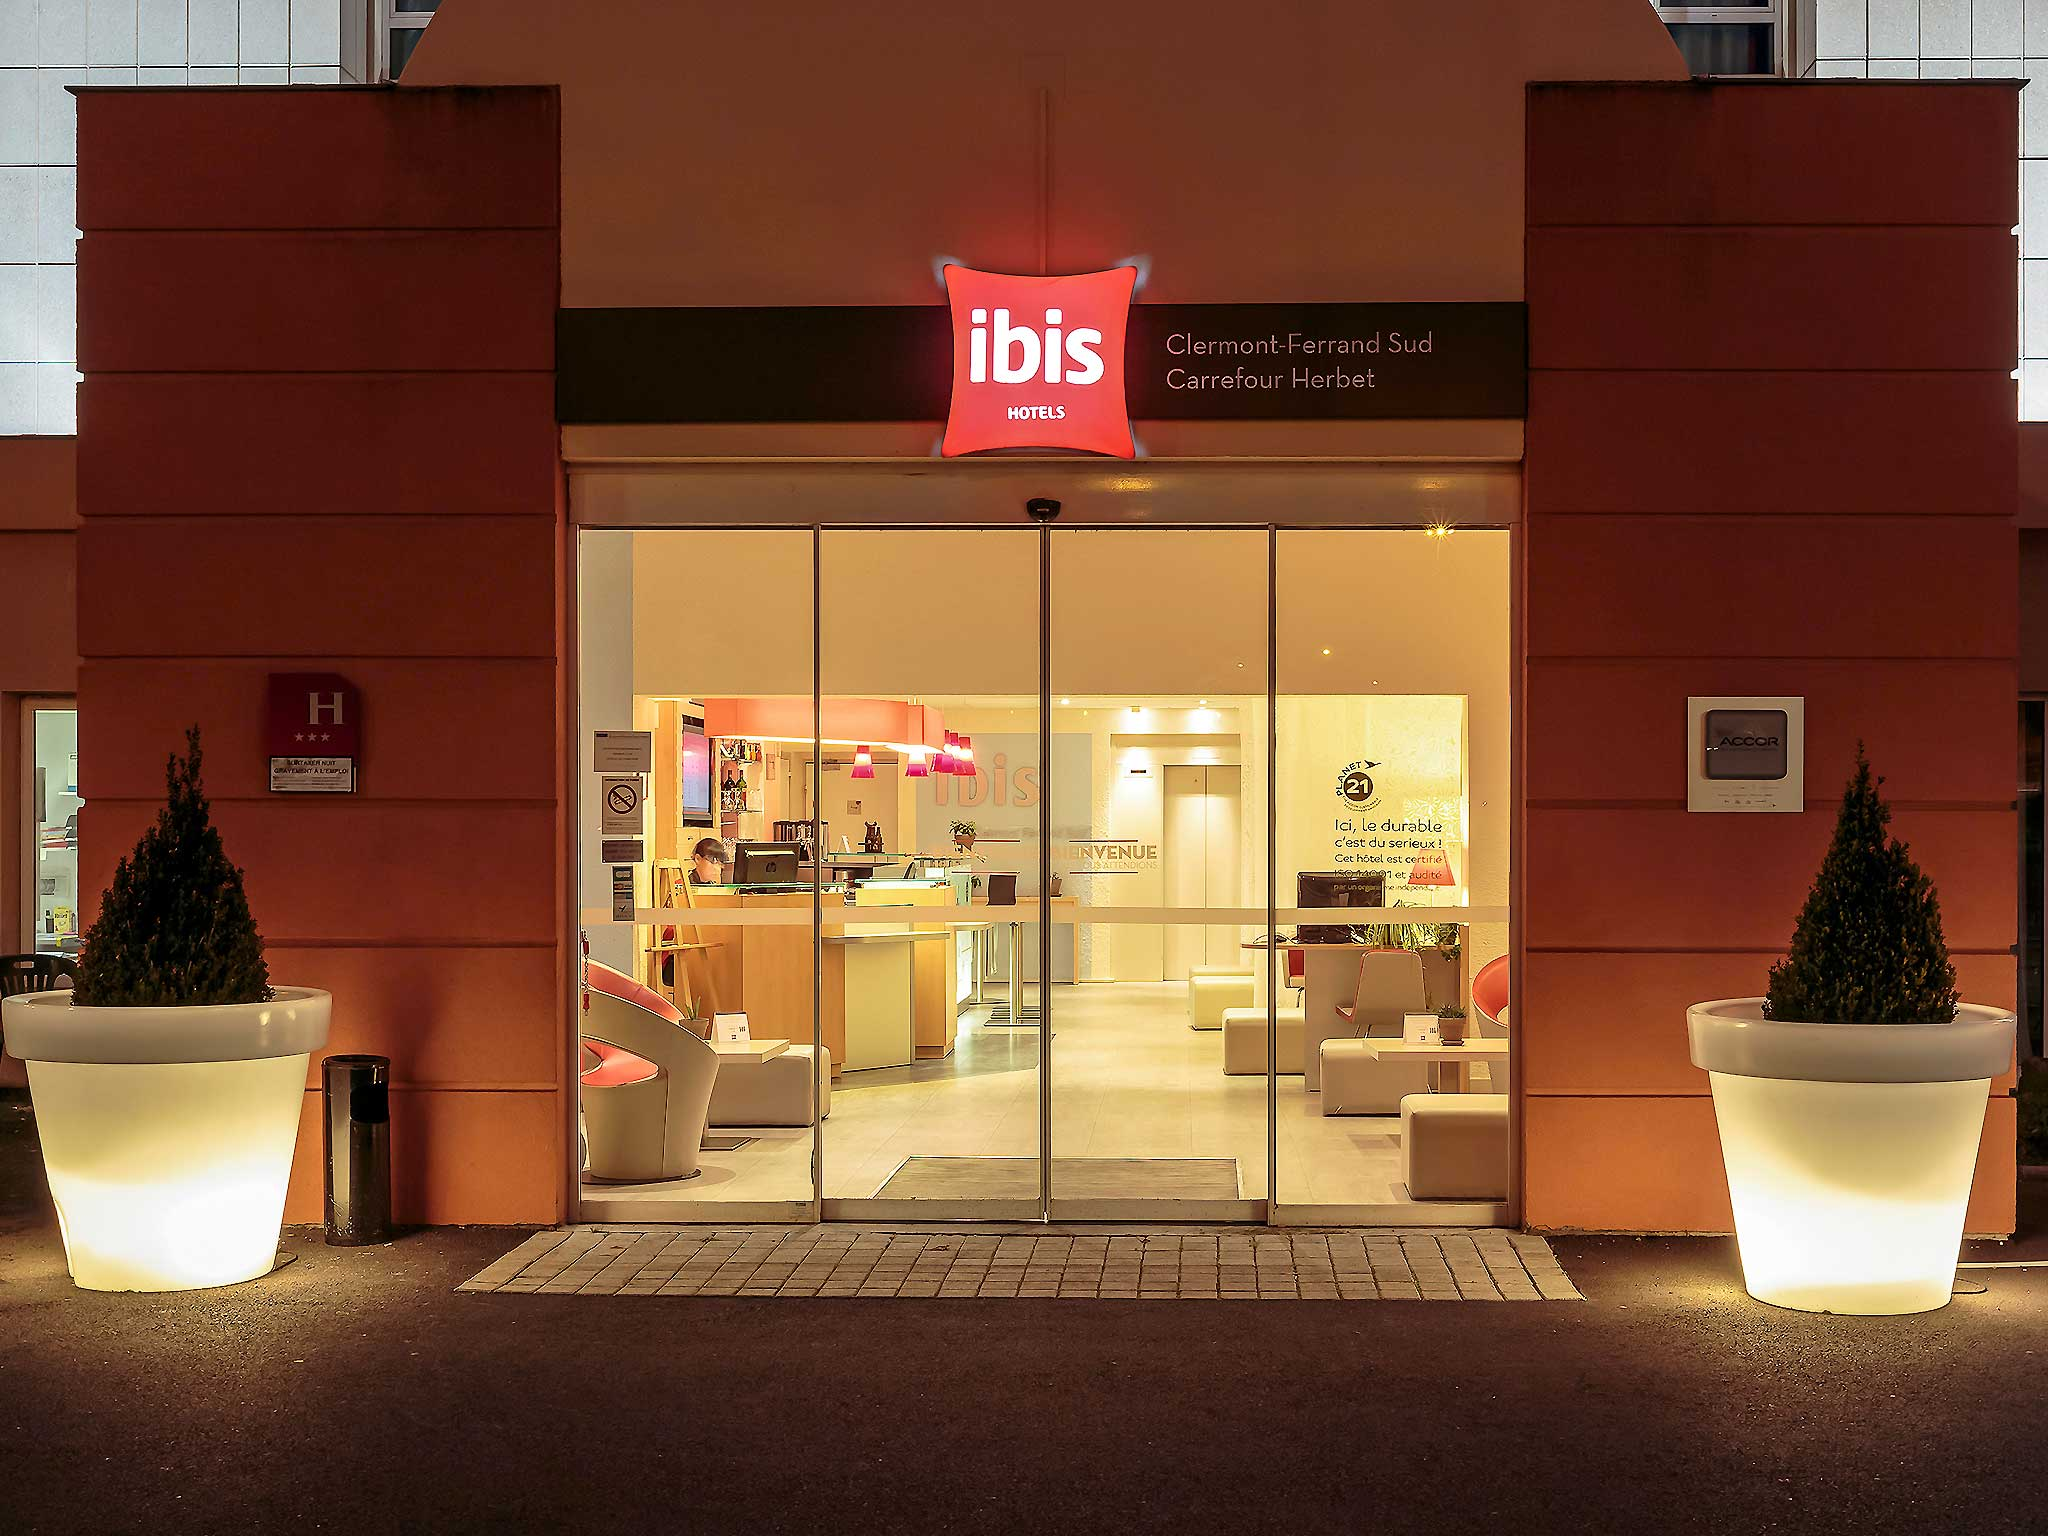 Otel – ibis Clermont-Ferrand Sud Carrefour Herbet